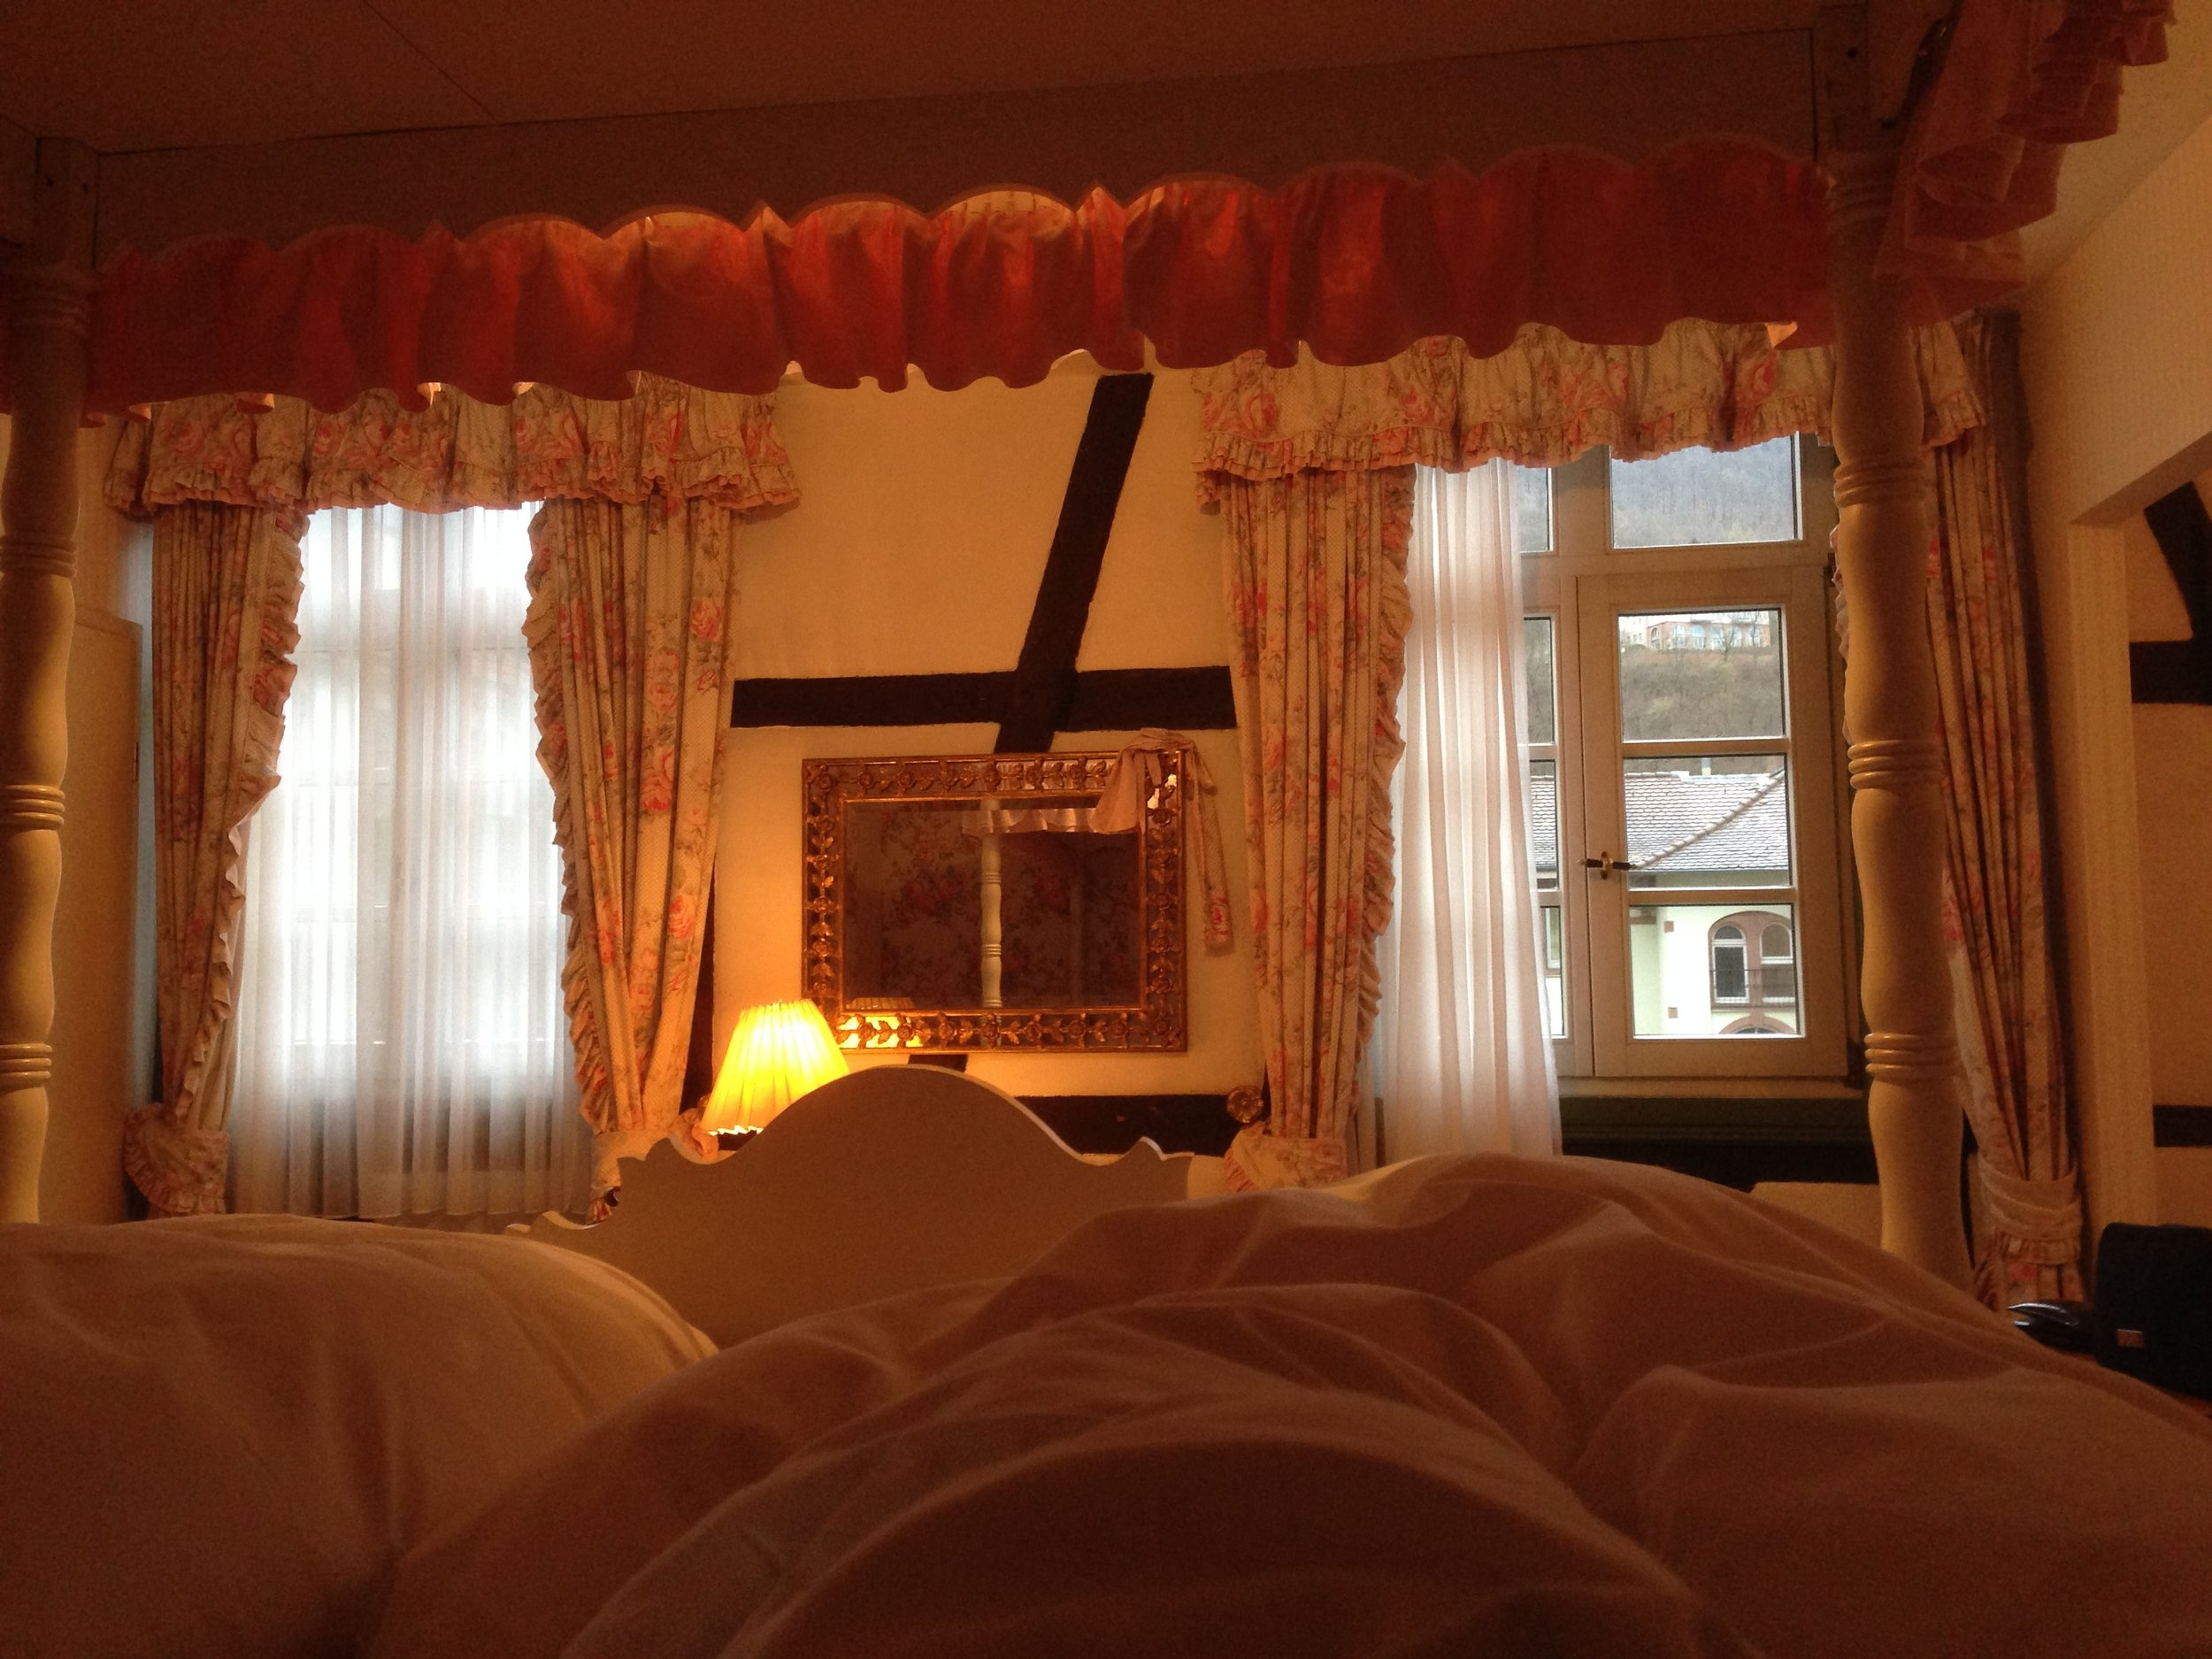 View from the princess-like bed